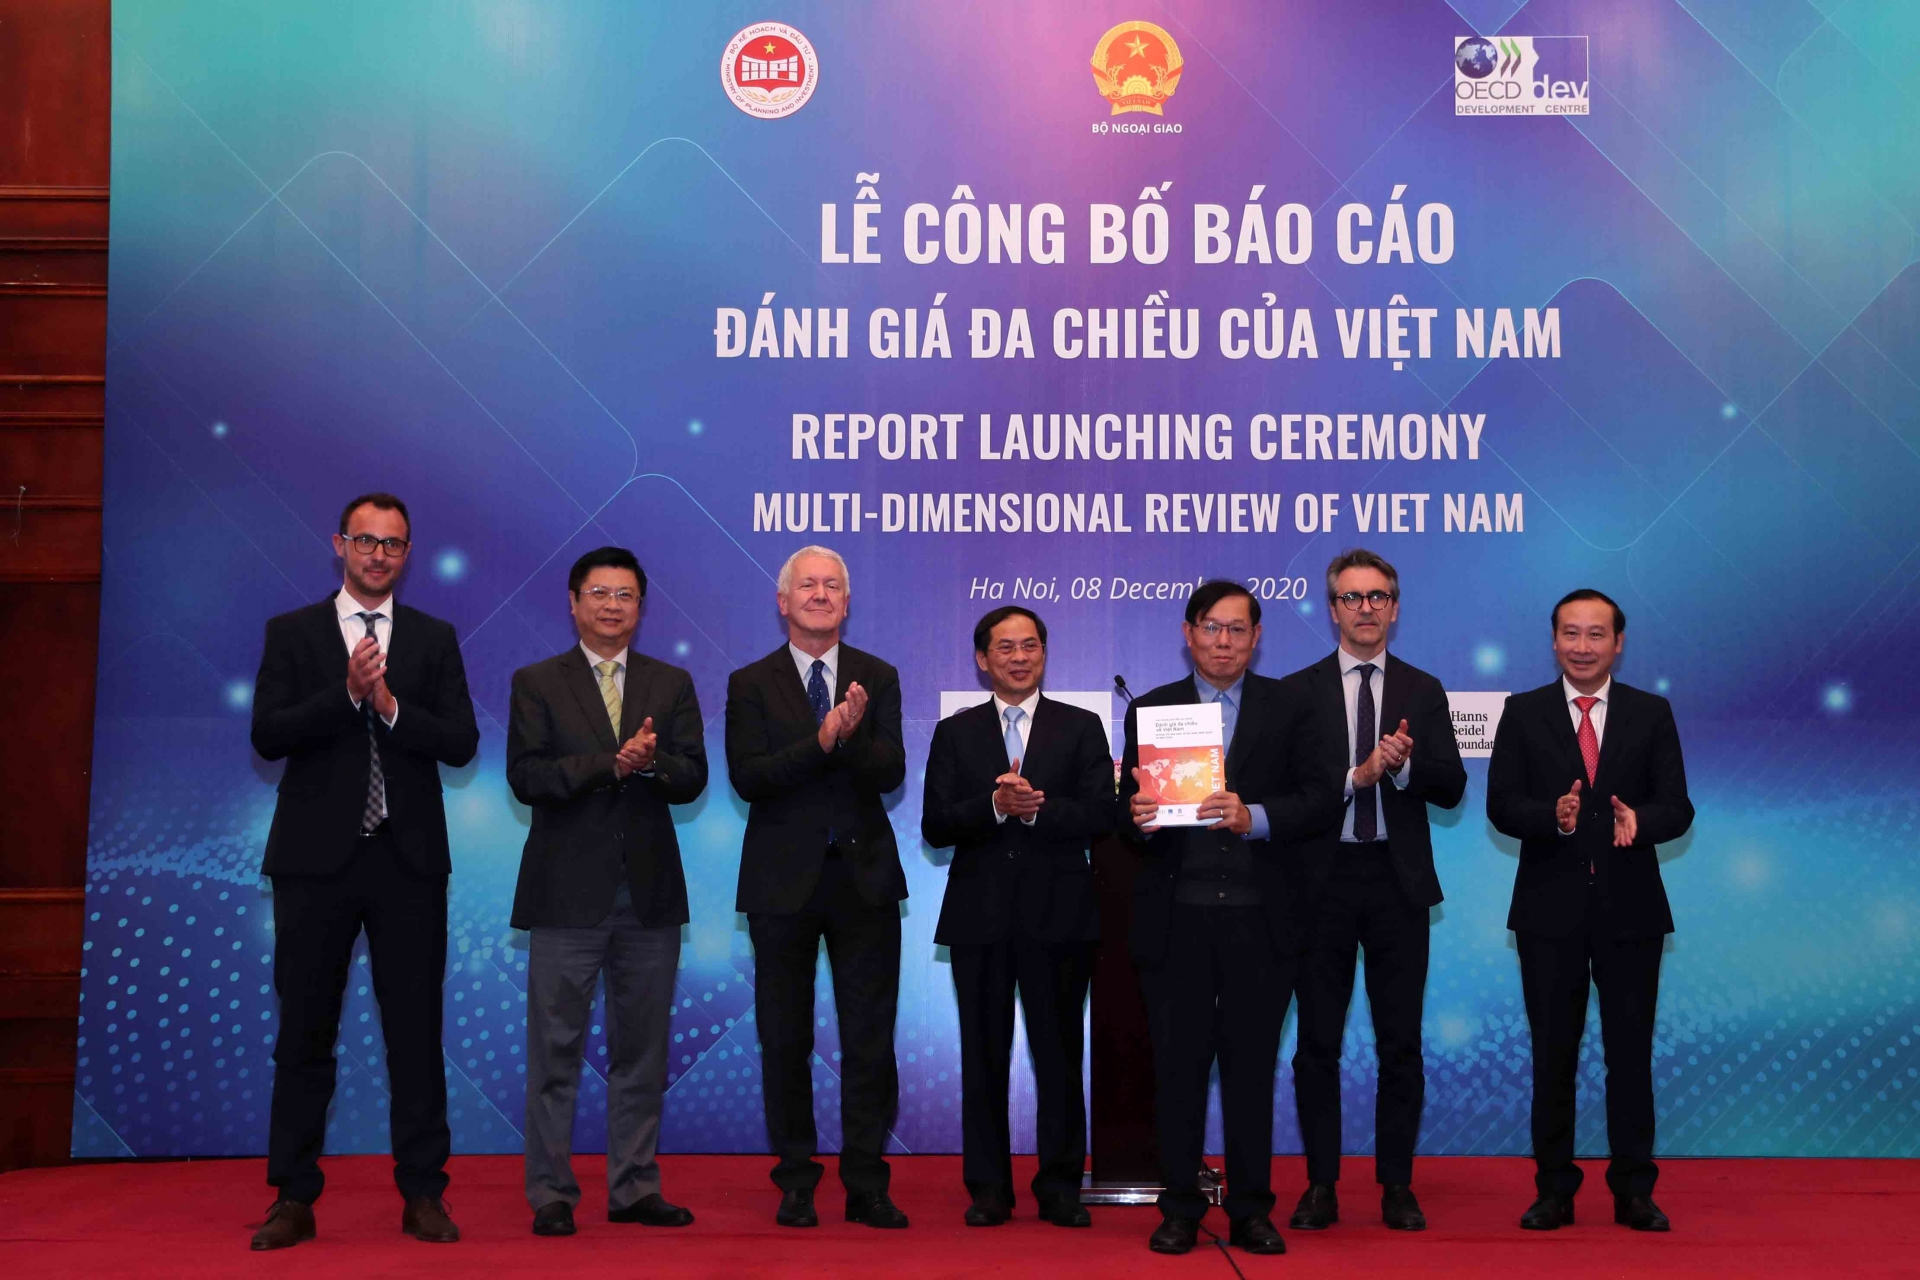 Multi-Dimensional Review of Vietnam launched